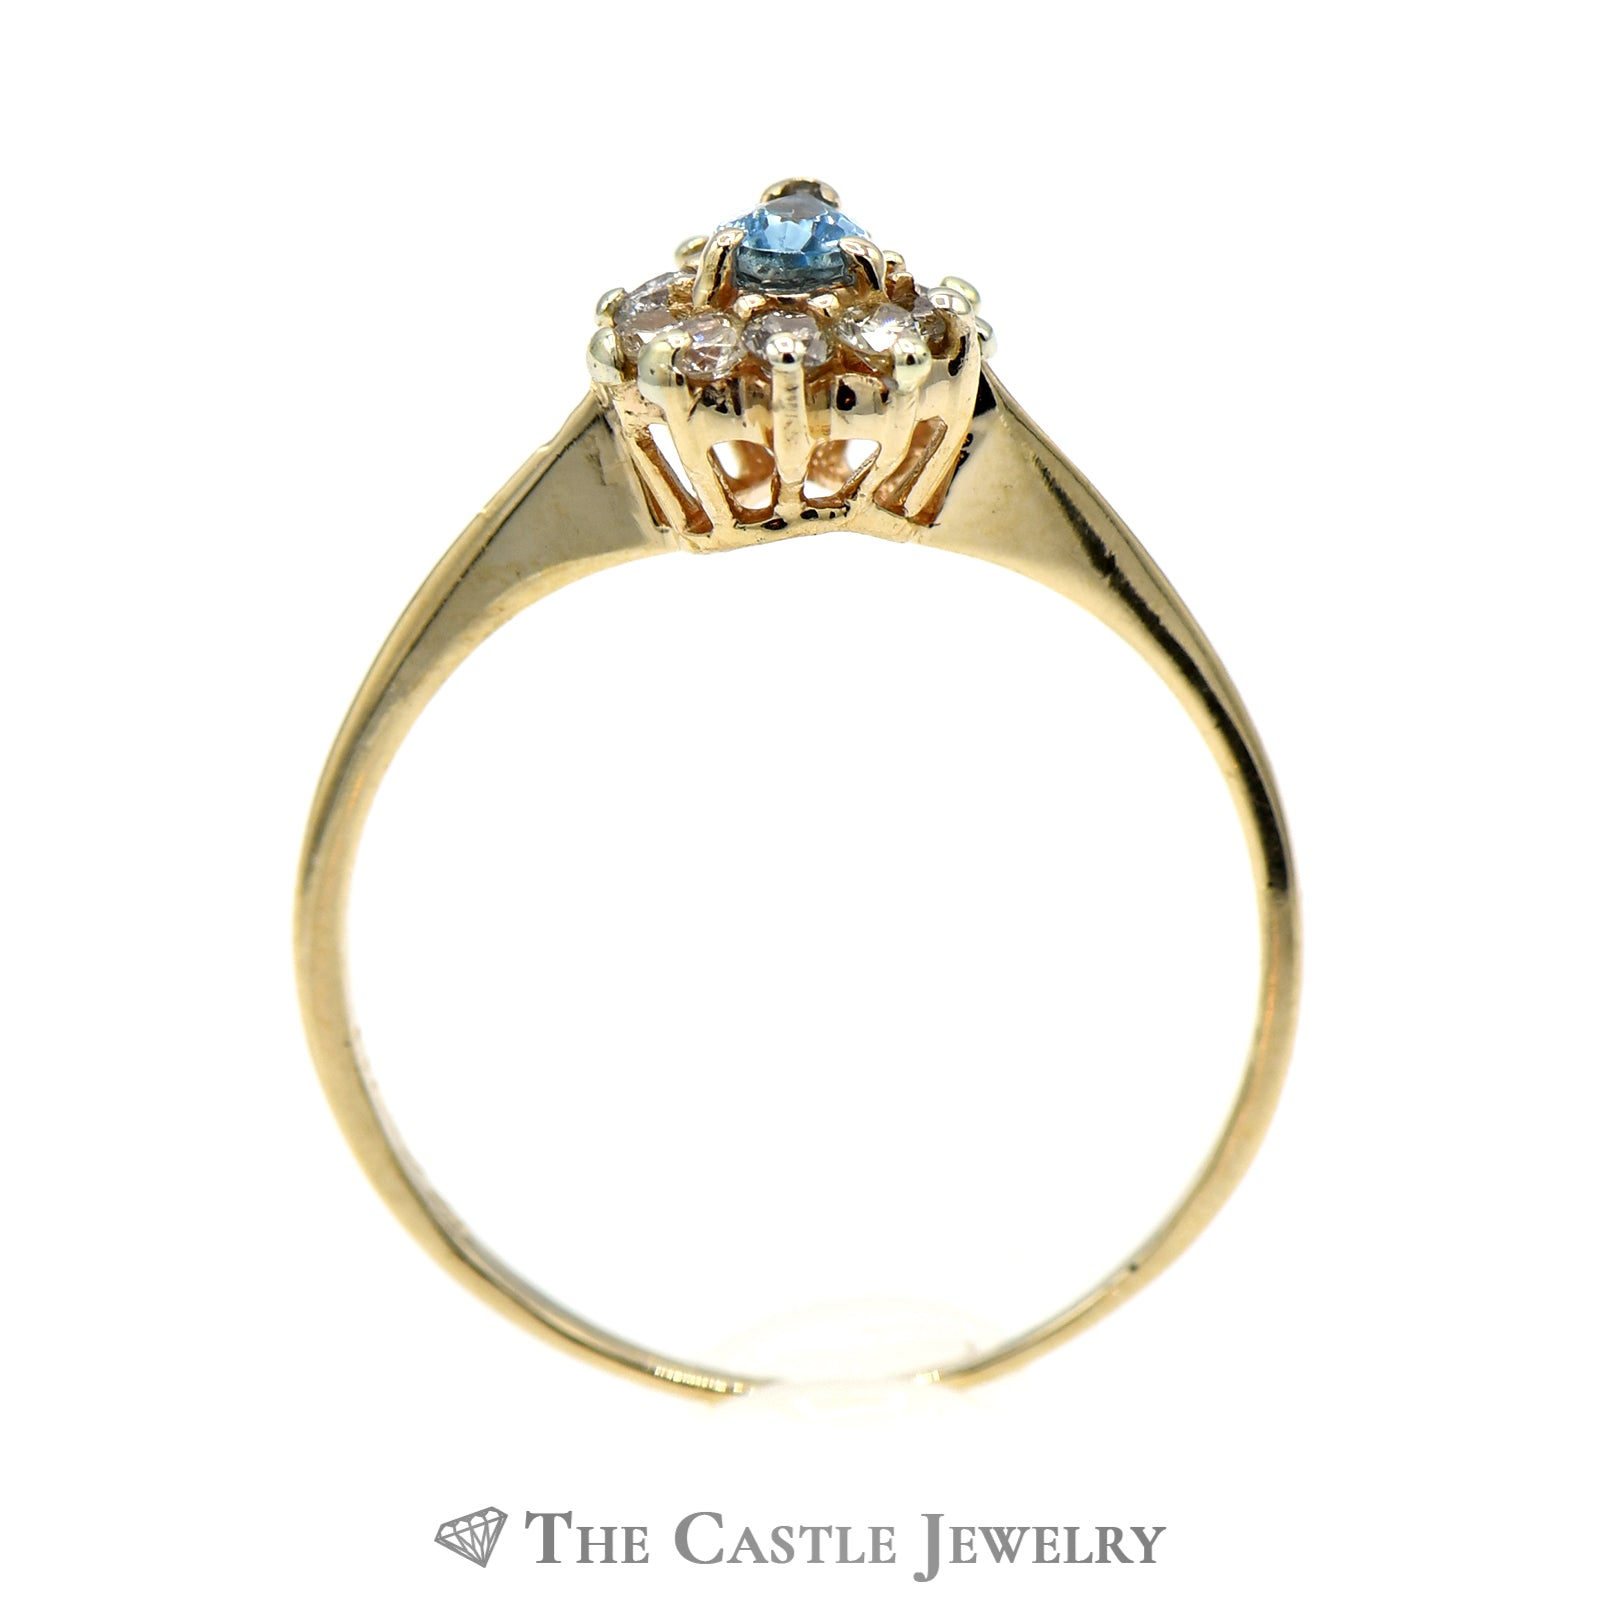 Petite Pear Shaped Topaz Ring with Diamond Halo-1